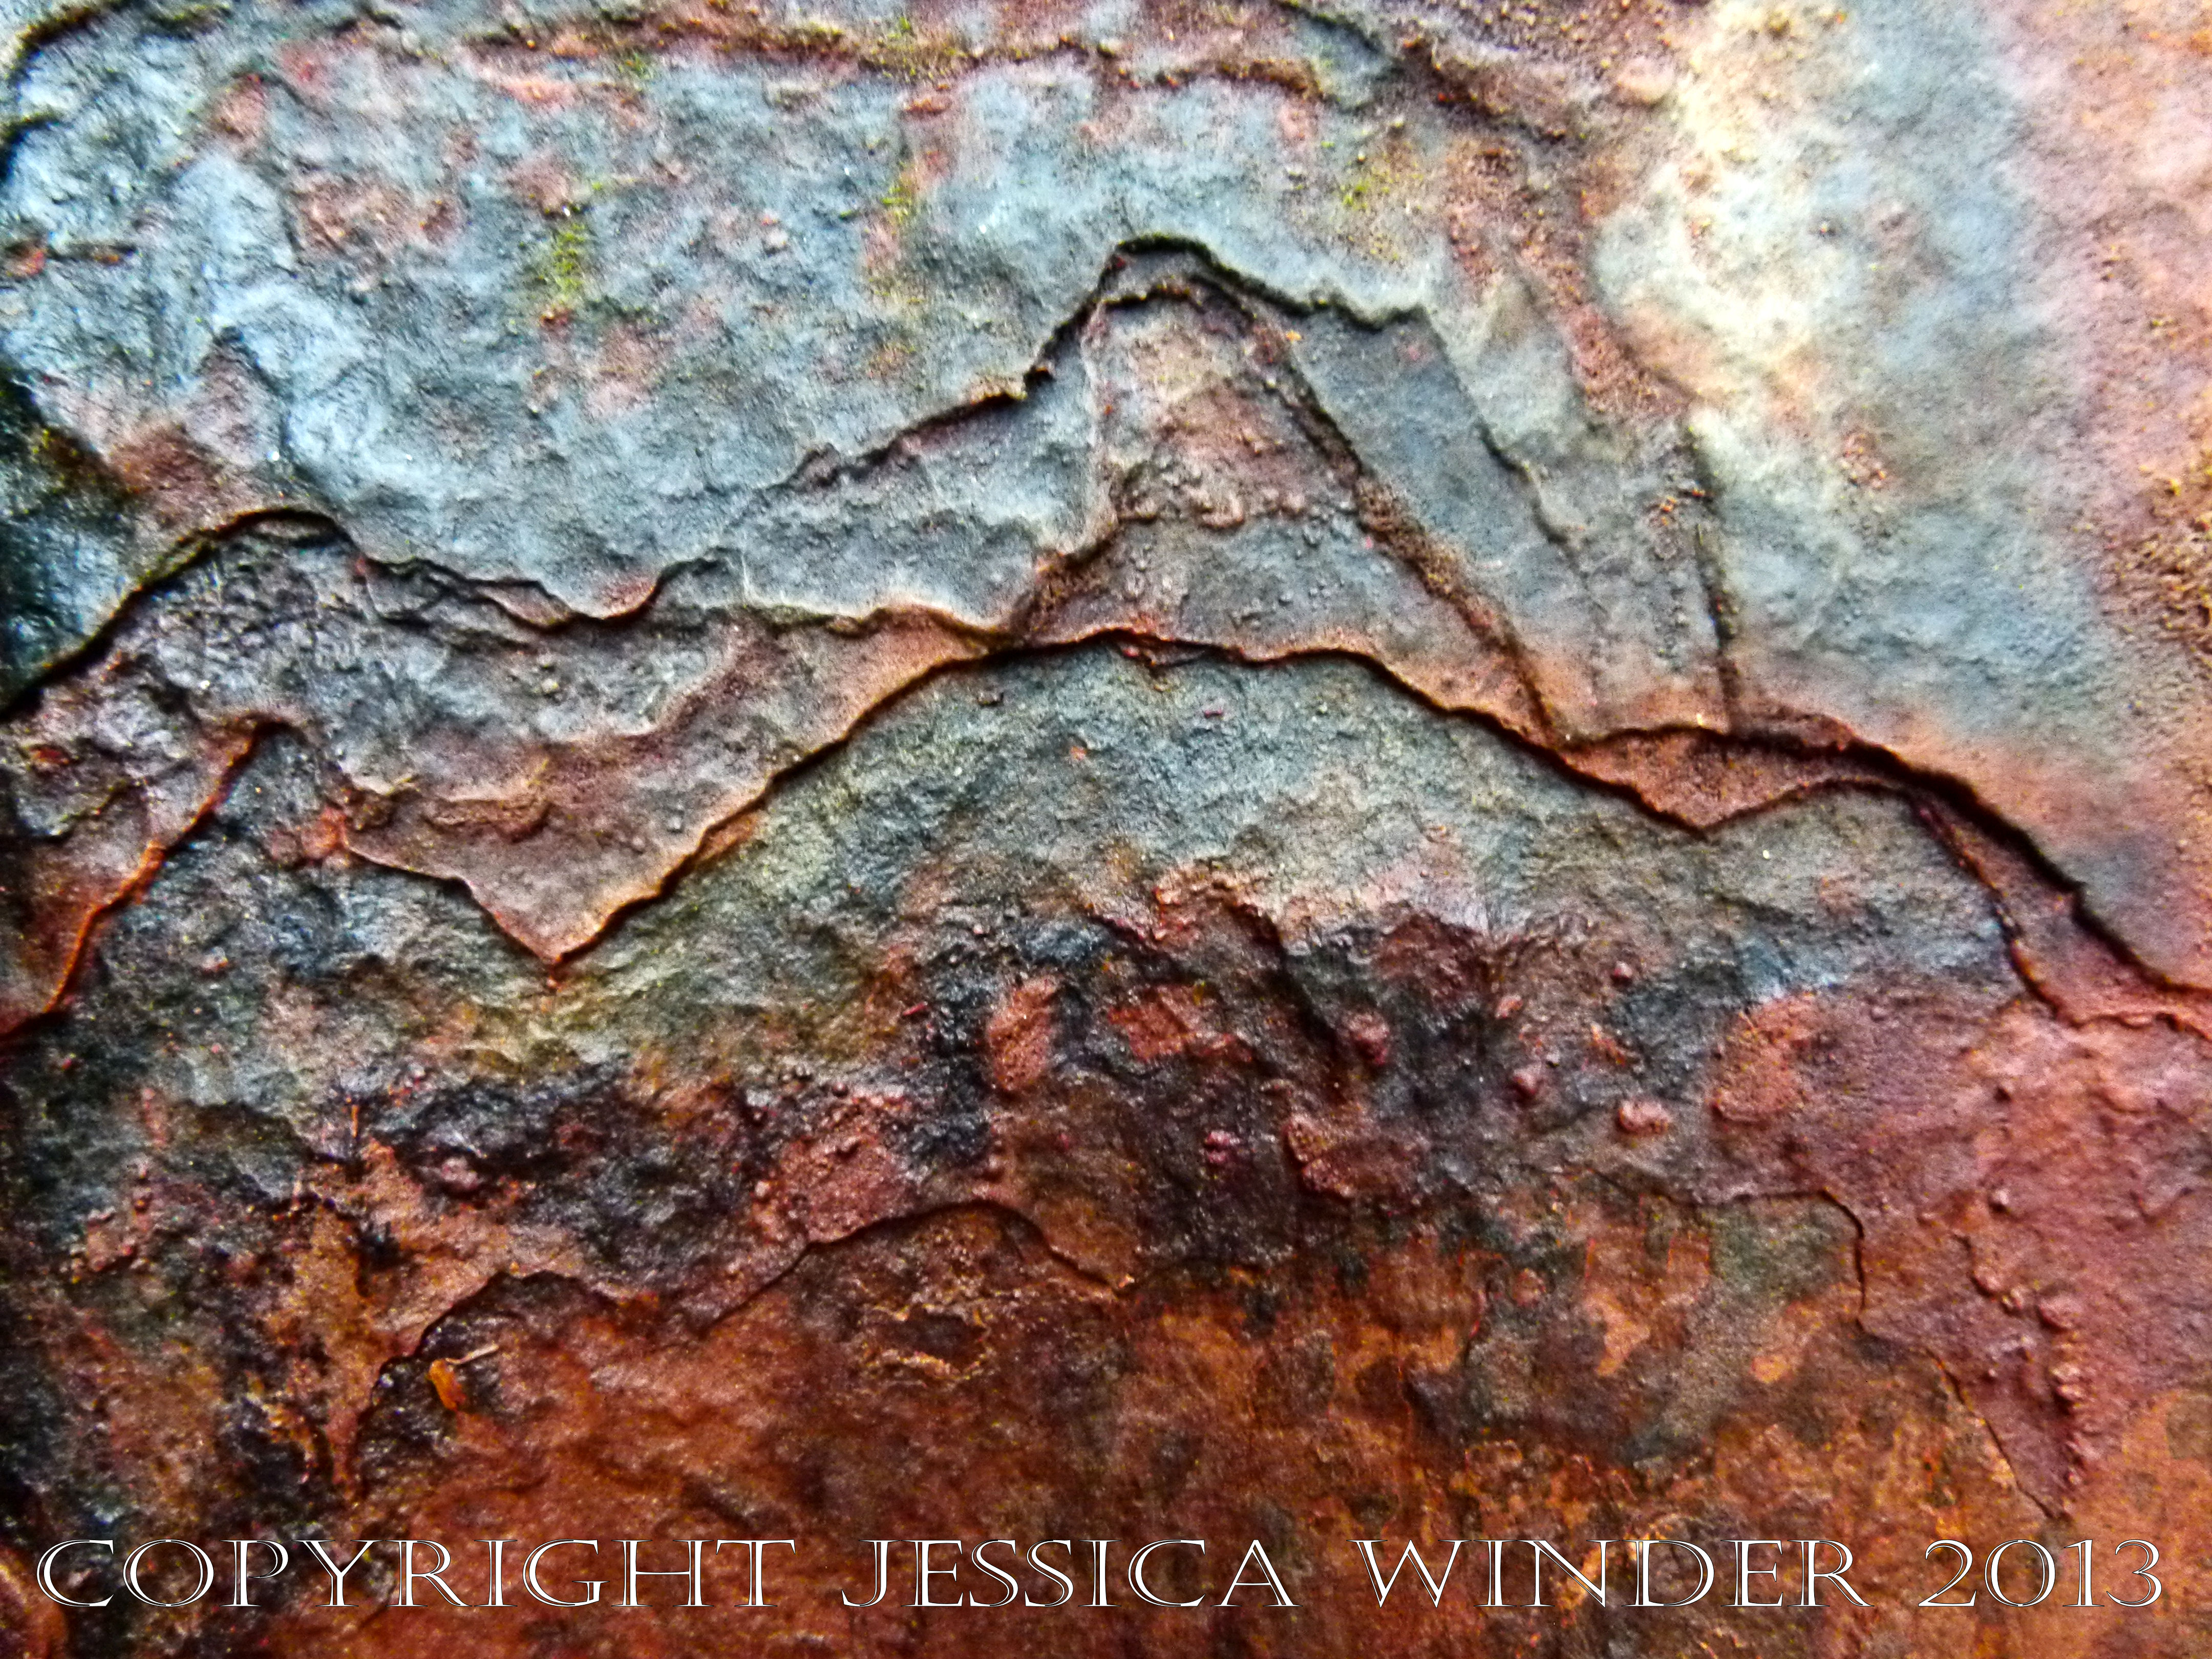 Saltwater Corrosion in Iron 1 – Jessica's Nature Blog